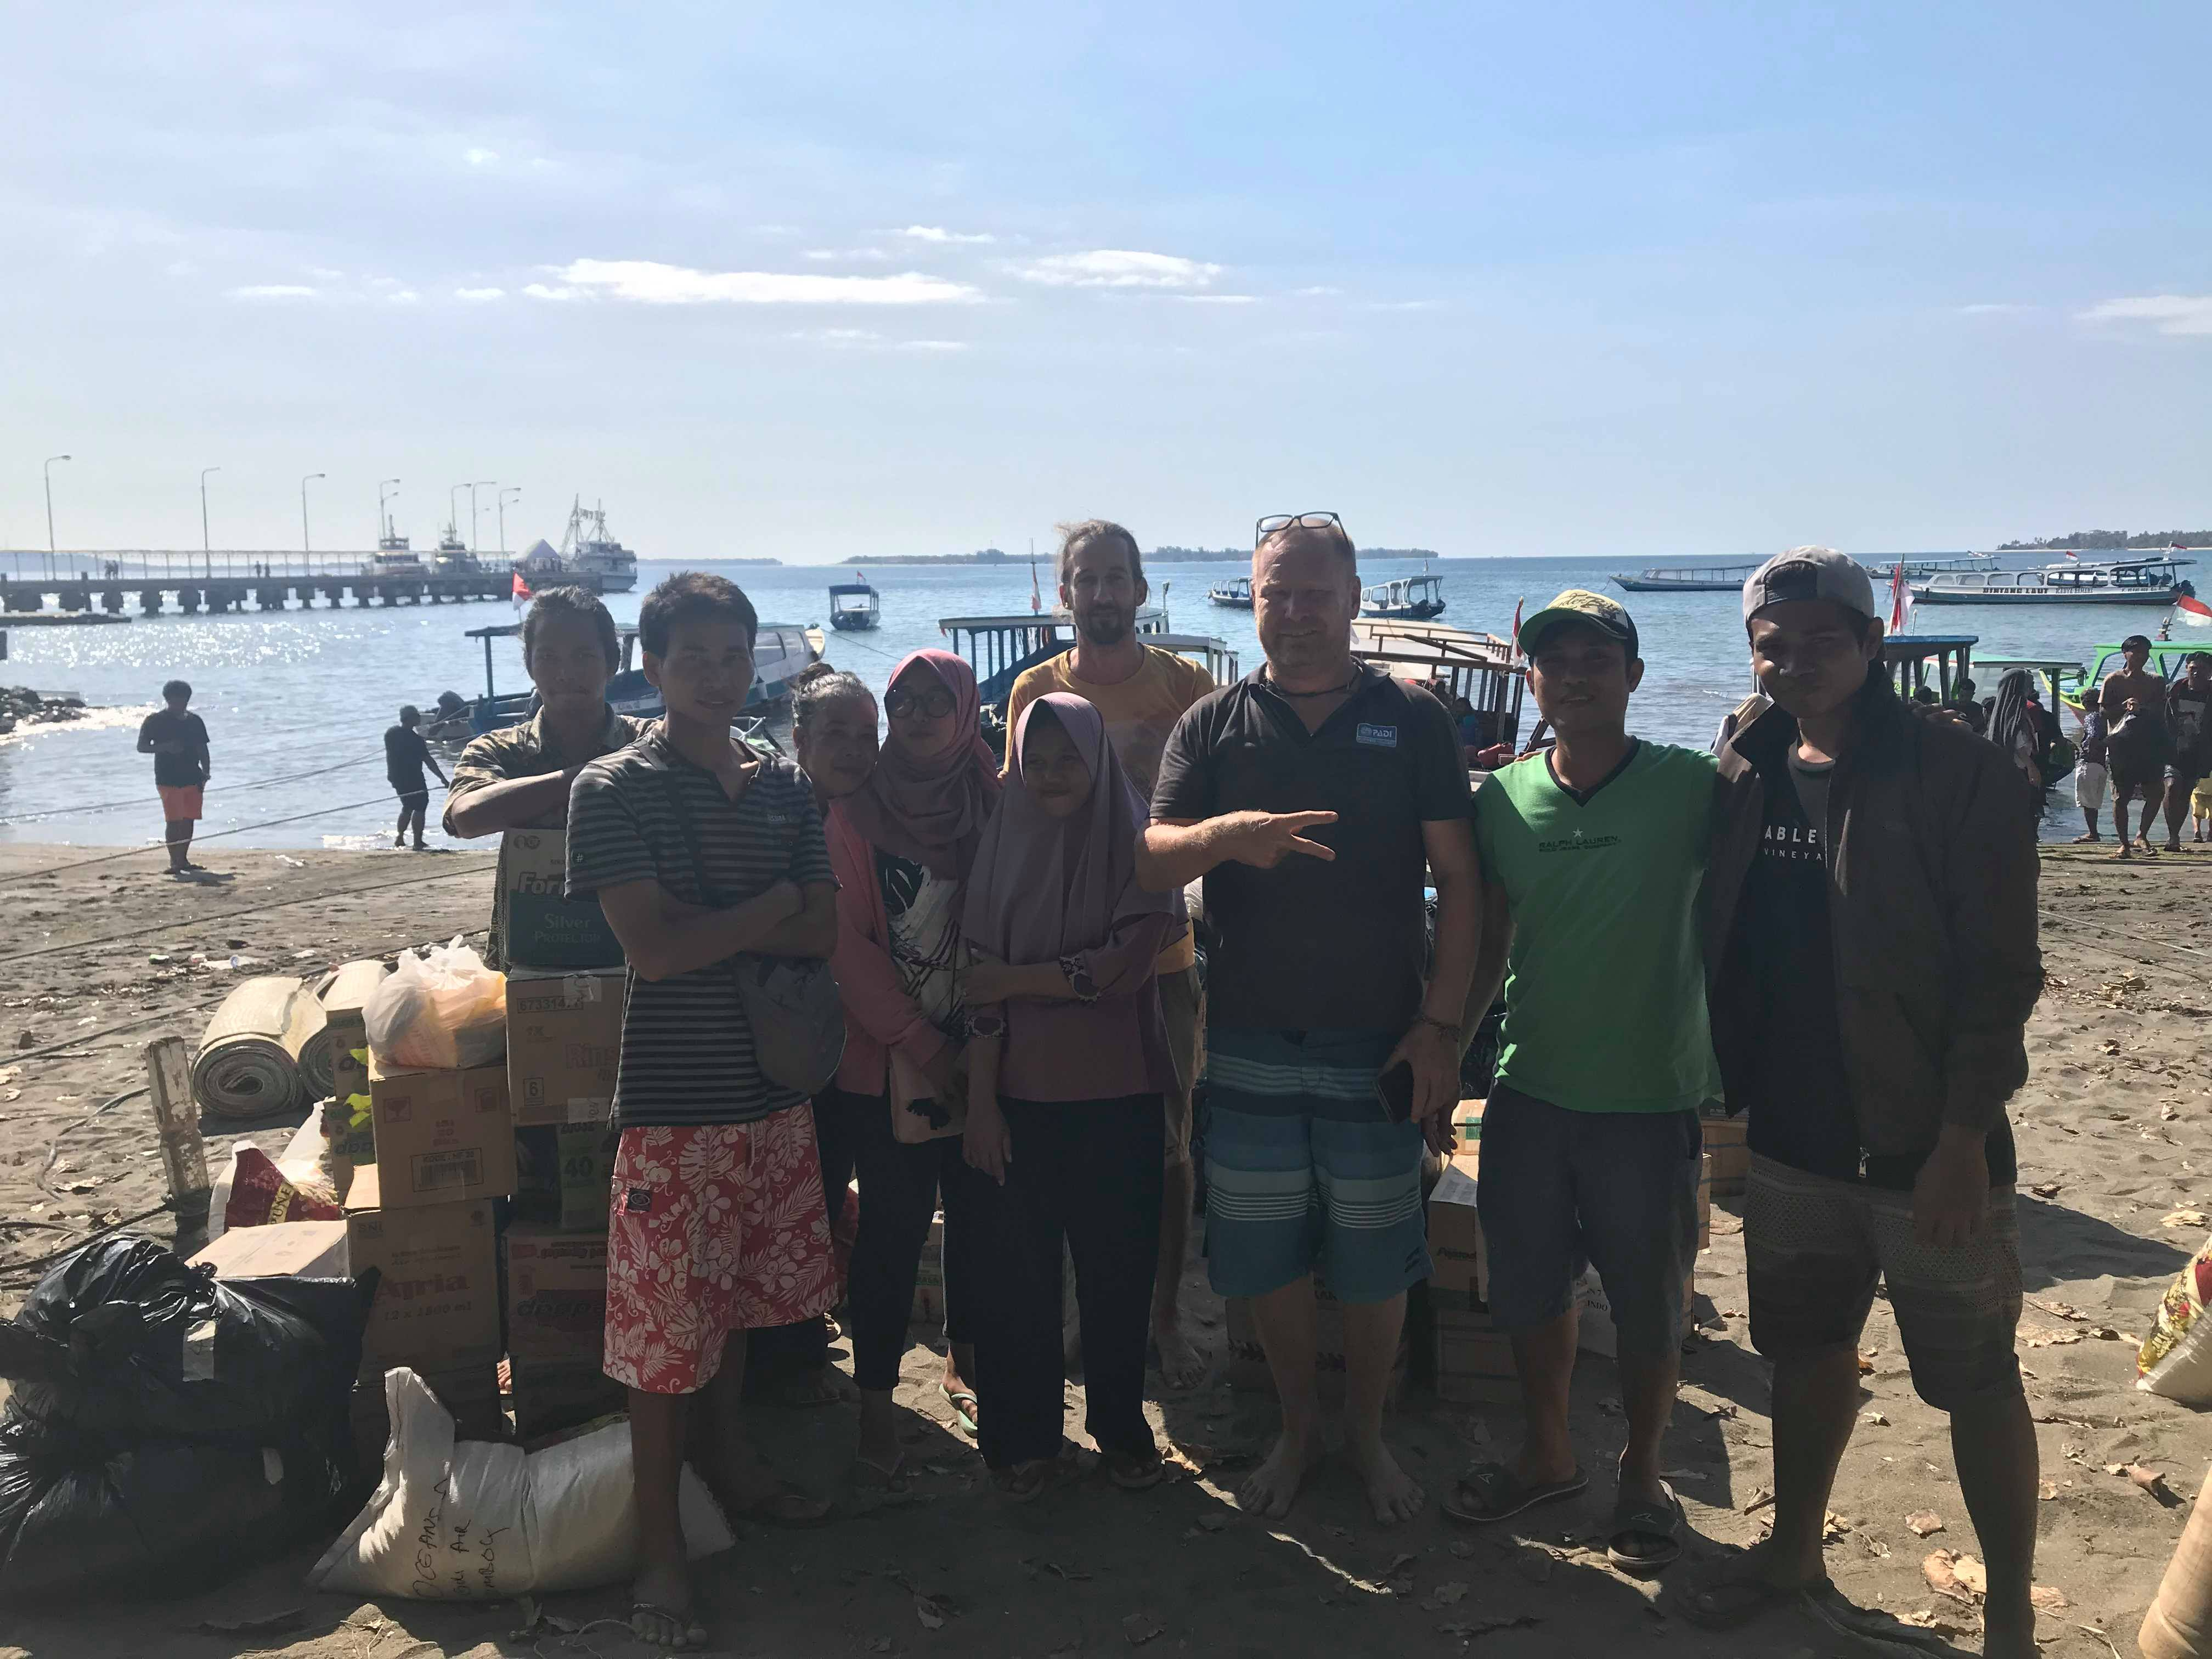 Supplies arrived in Lombok after the earthquak